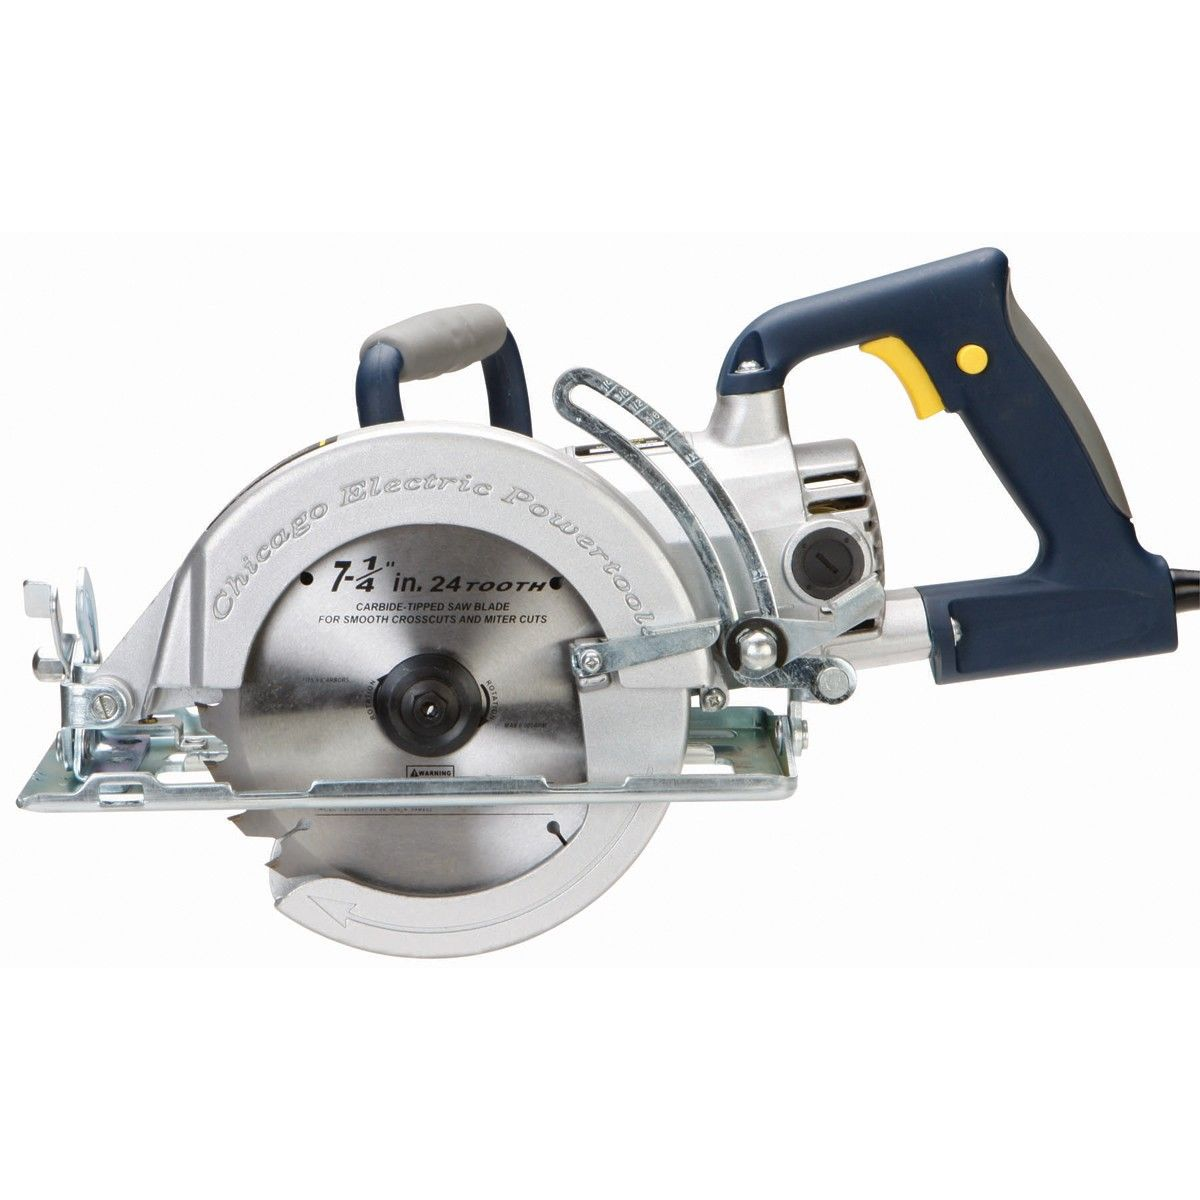 7 14 in 13 amp professional worm drive framing saw worm drive 13 amp professional worm drive framing saw jeuxipadfo Choice Image